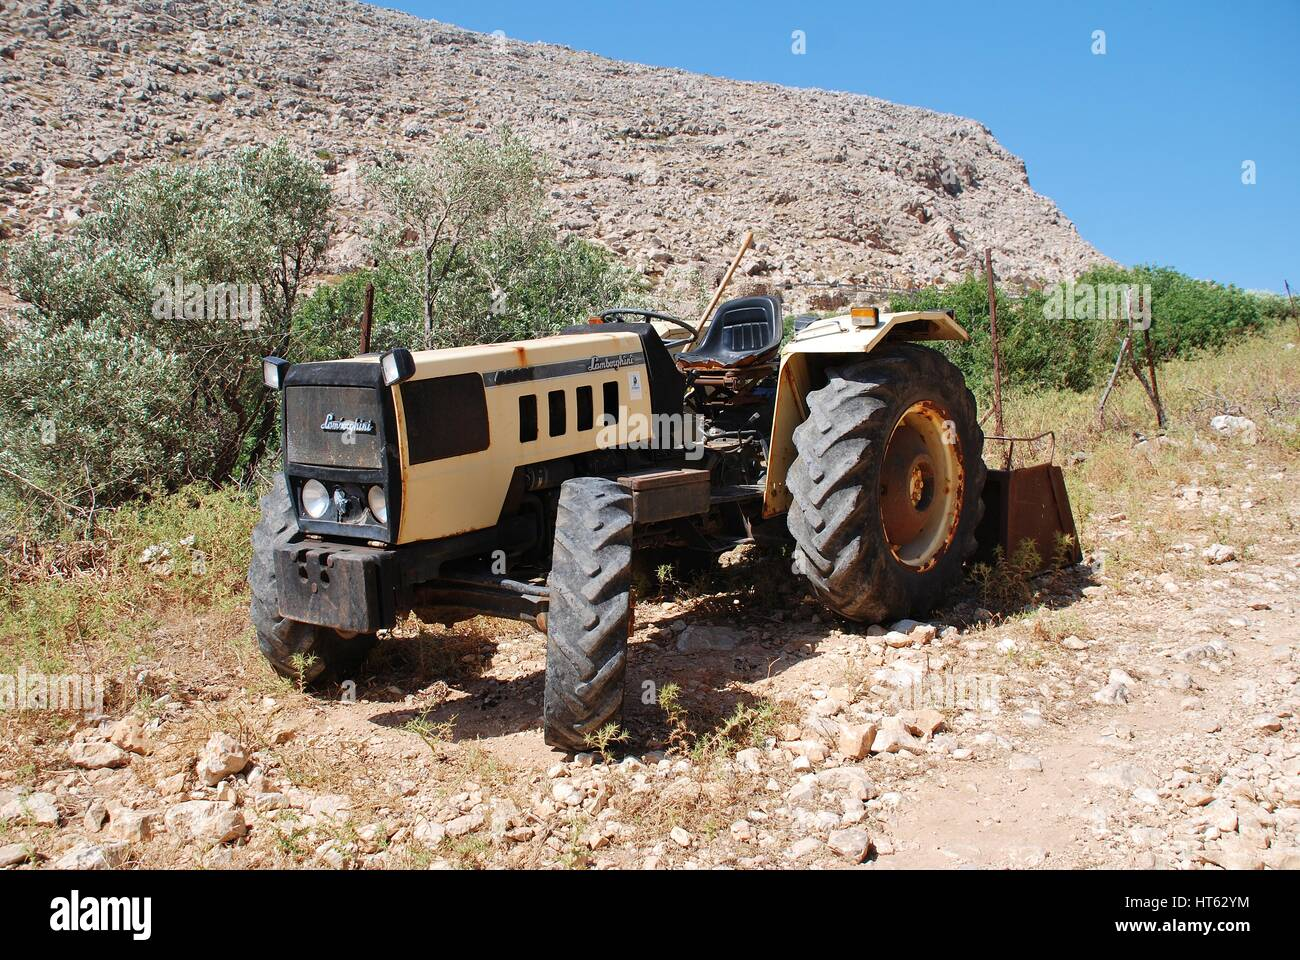 A Lamborghini tractor on a dirt track at Chorio on the Greek